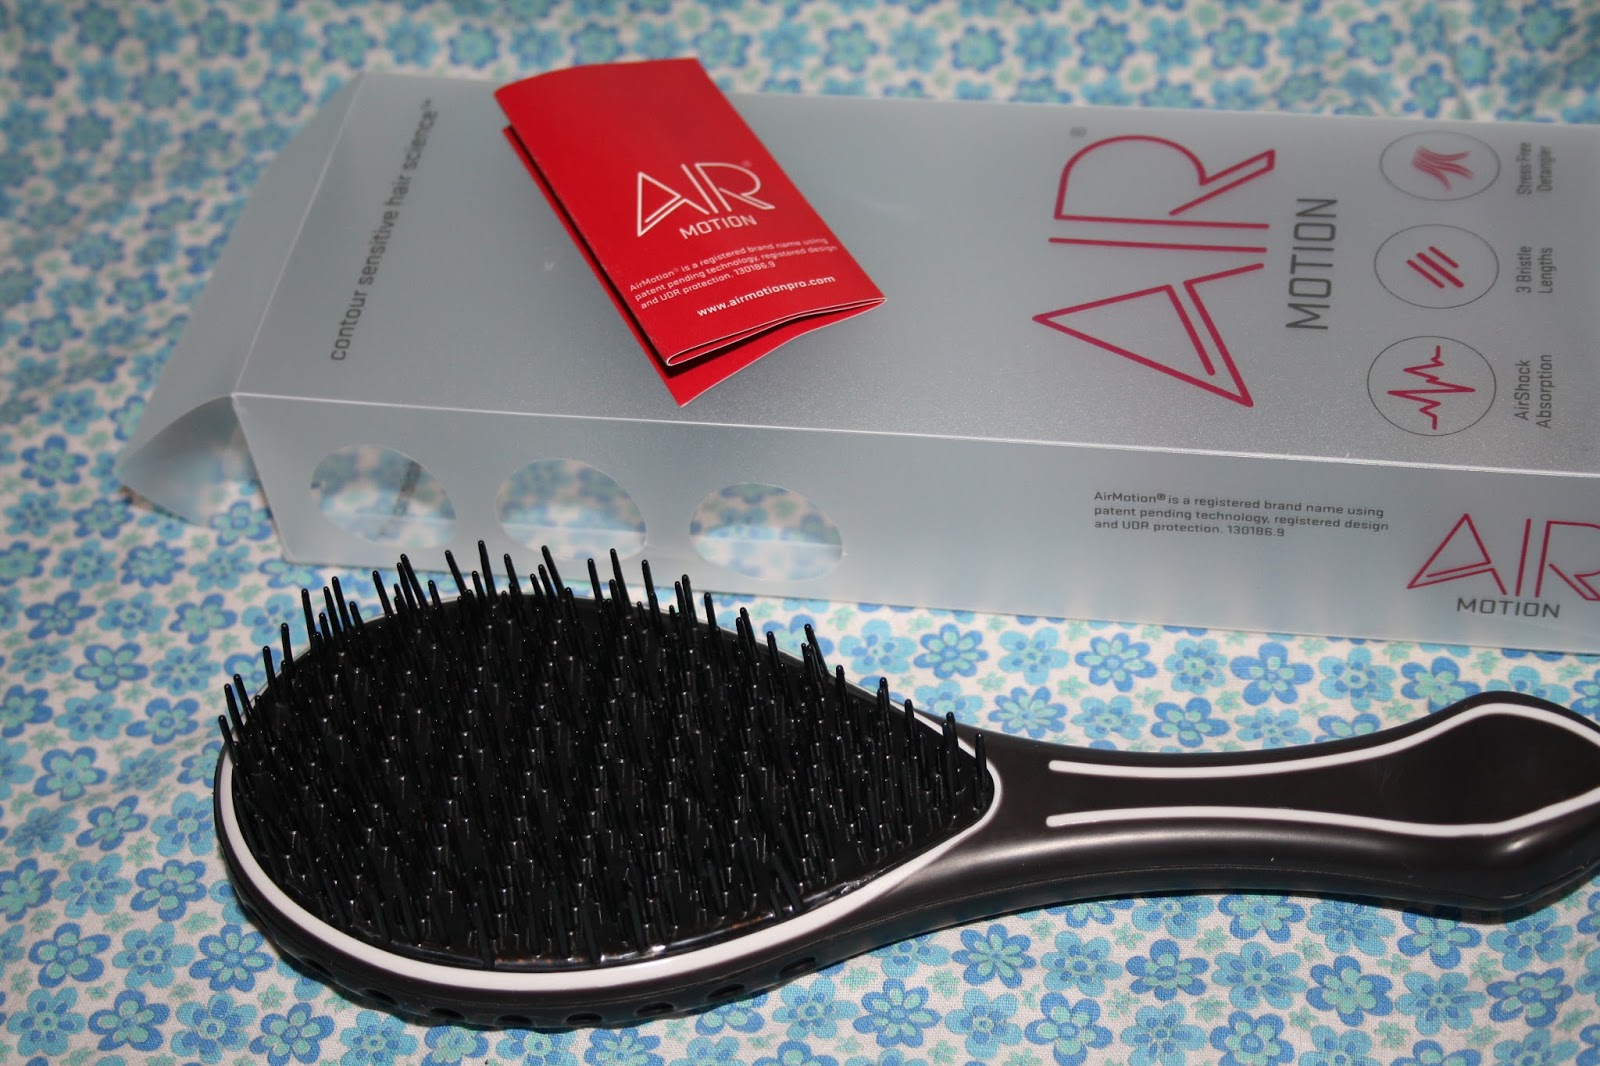 AirMotion Pro Hairbrush